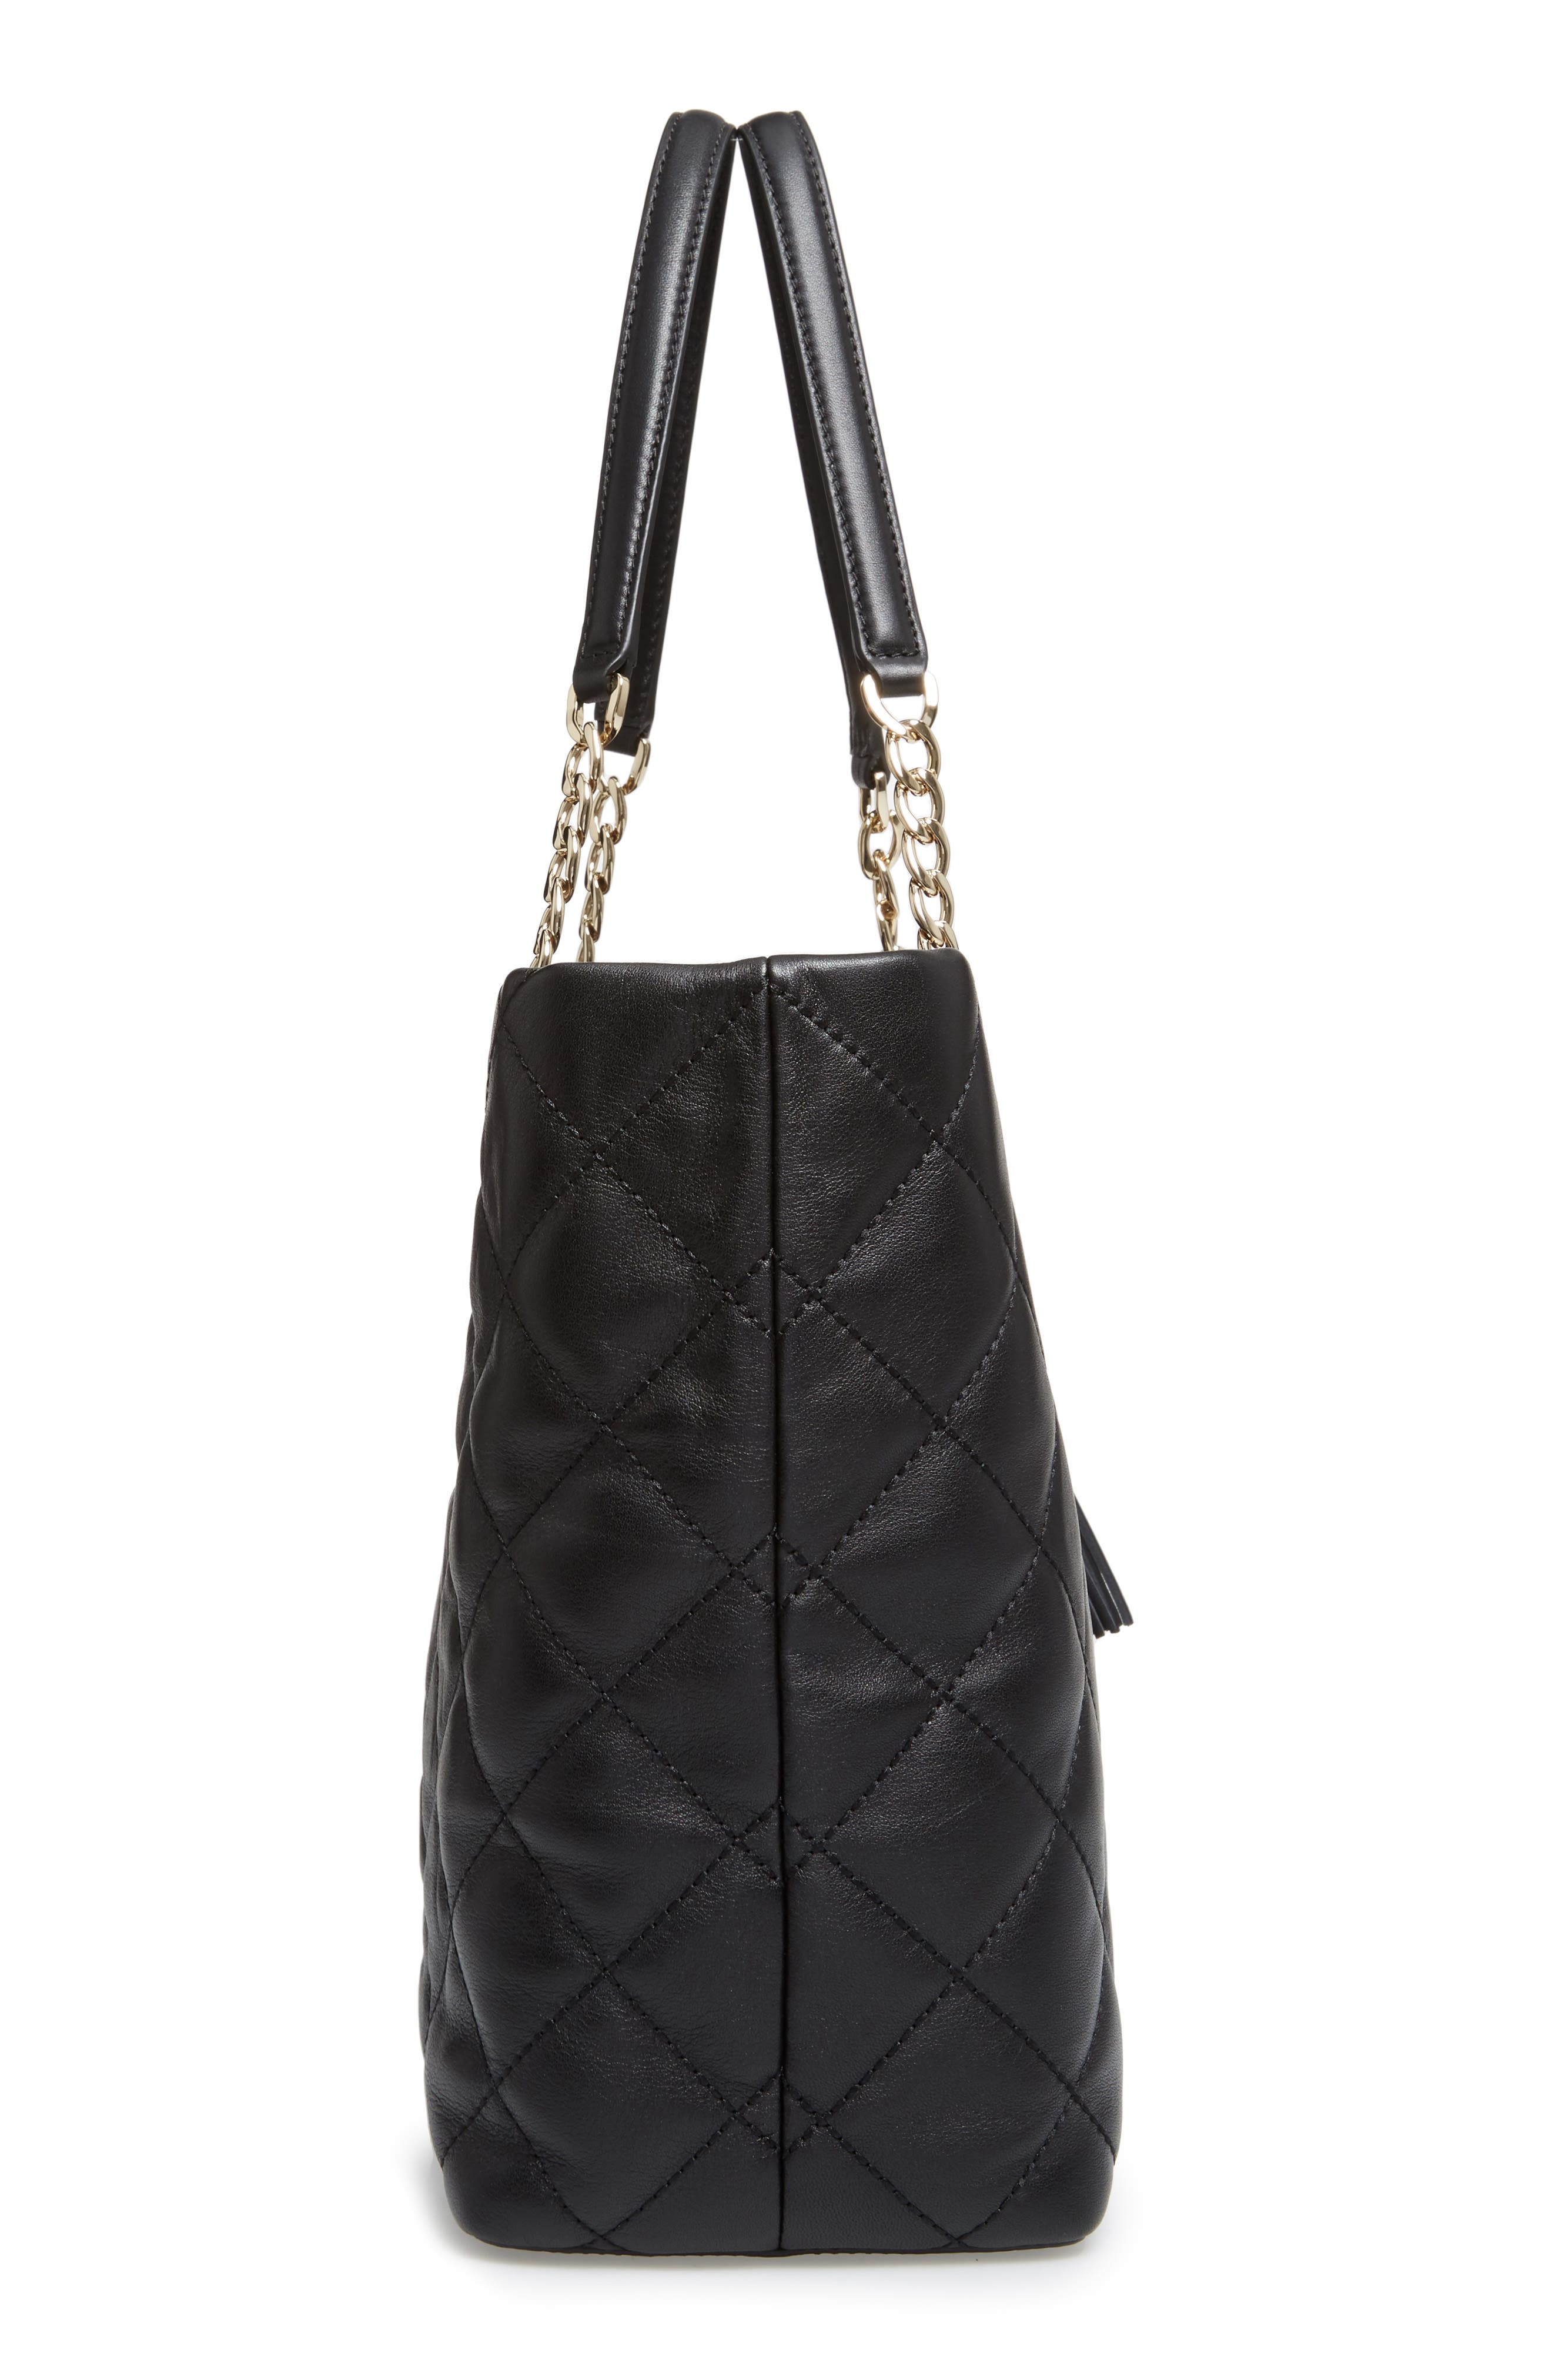 emerson place - priya quilted leather tote,                             Alternate thumbnail 5, color,                             Black